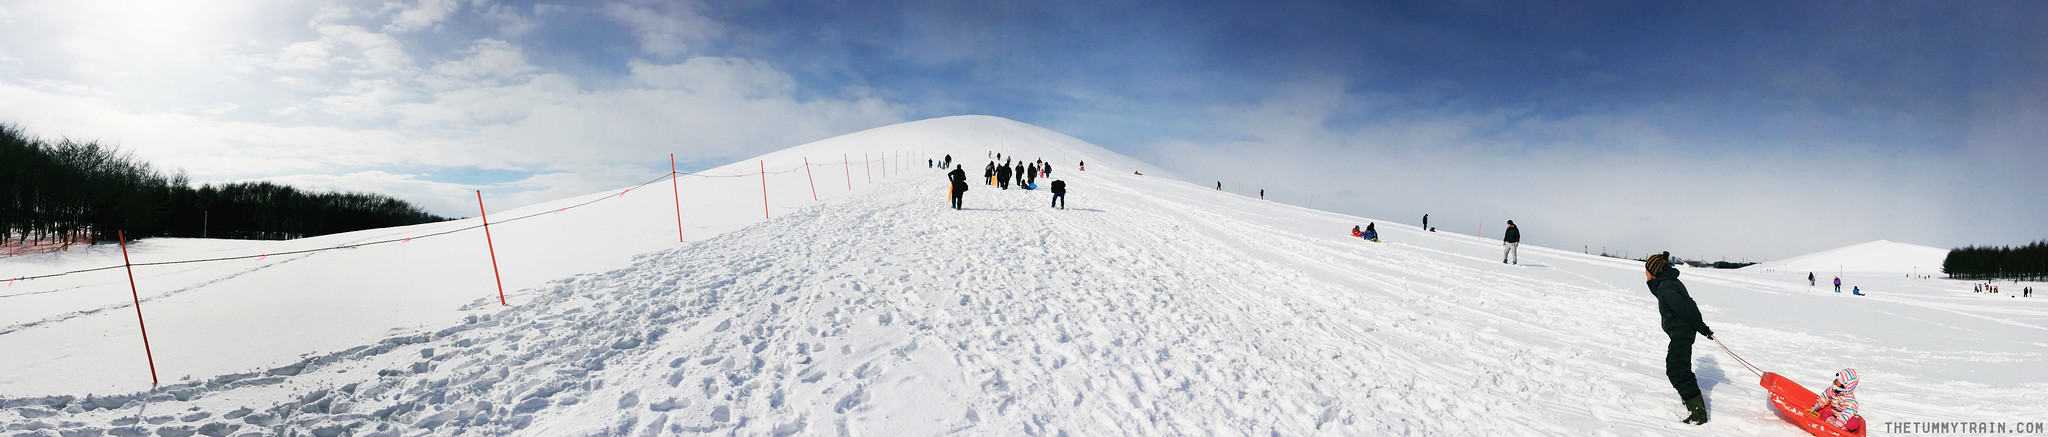 32536262330 d47d4171f6 k - Sapporo Snow And Smile: 8 Unforgettable Winter Experiences in Sapporo City